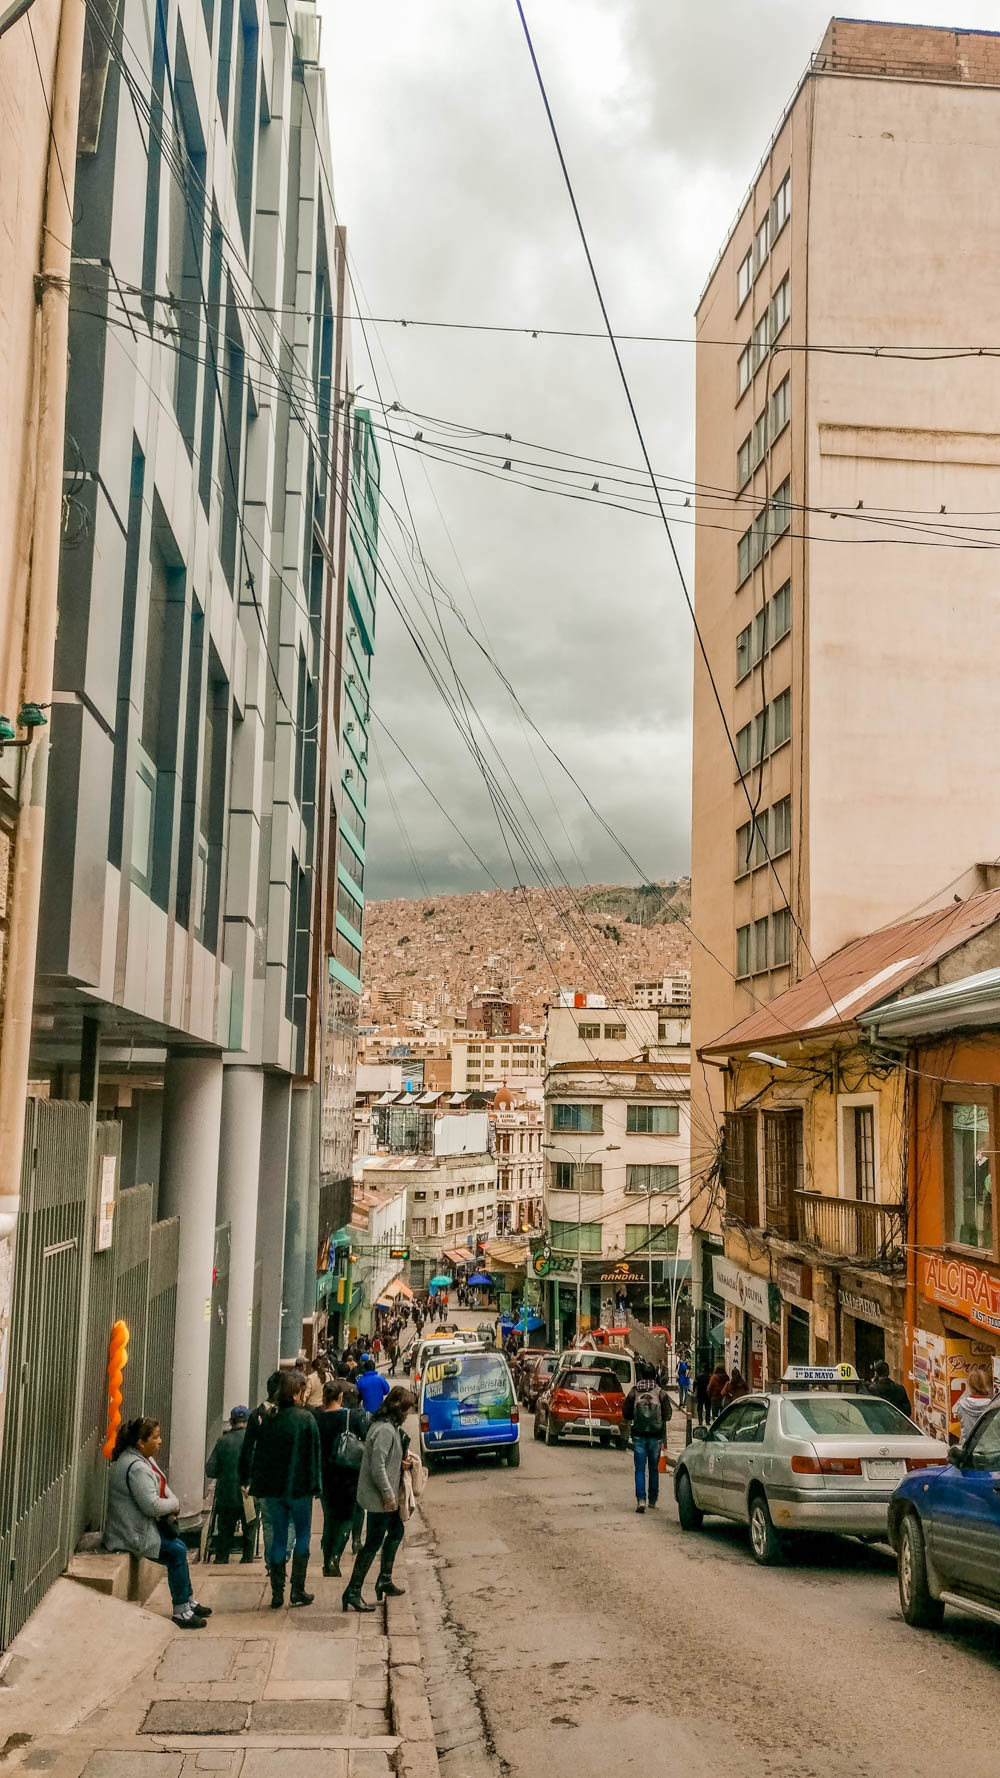 Centre of La Paz - Best places to visit in La Paz, Bolivia | Aliz's Wonderland